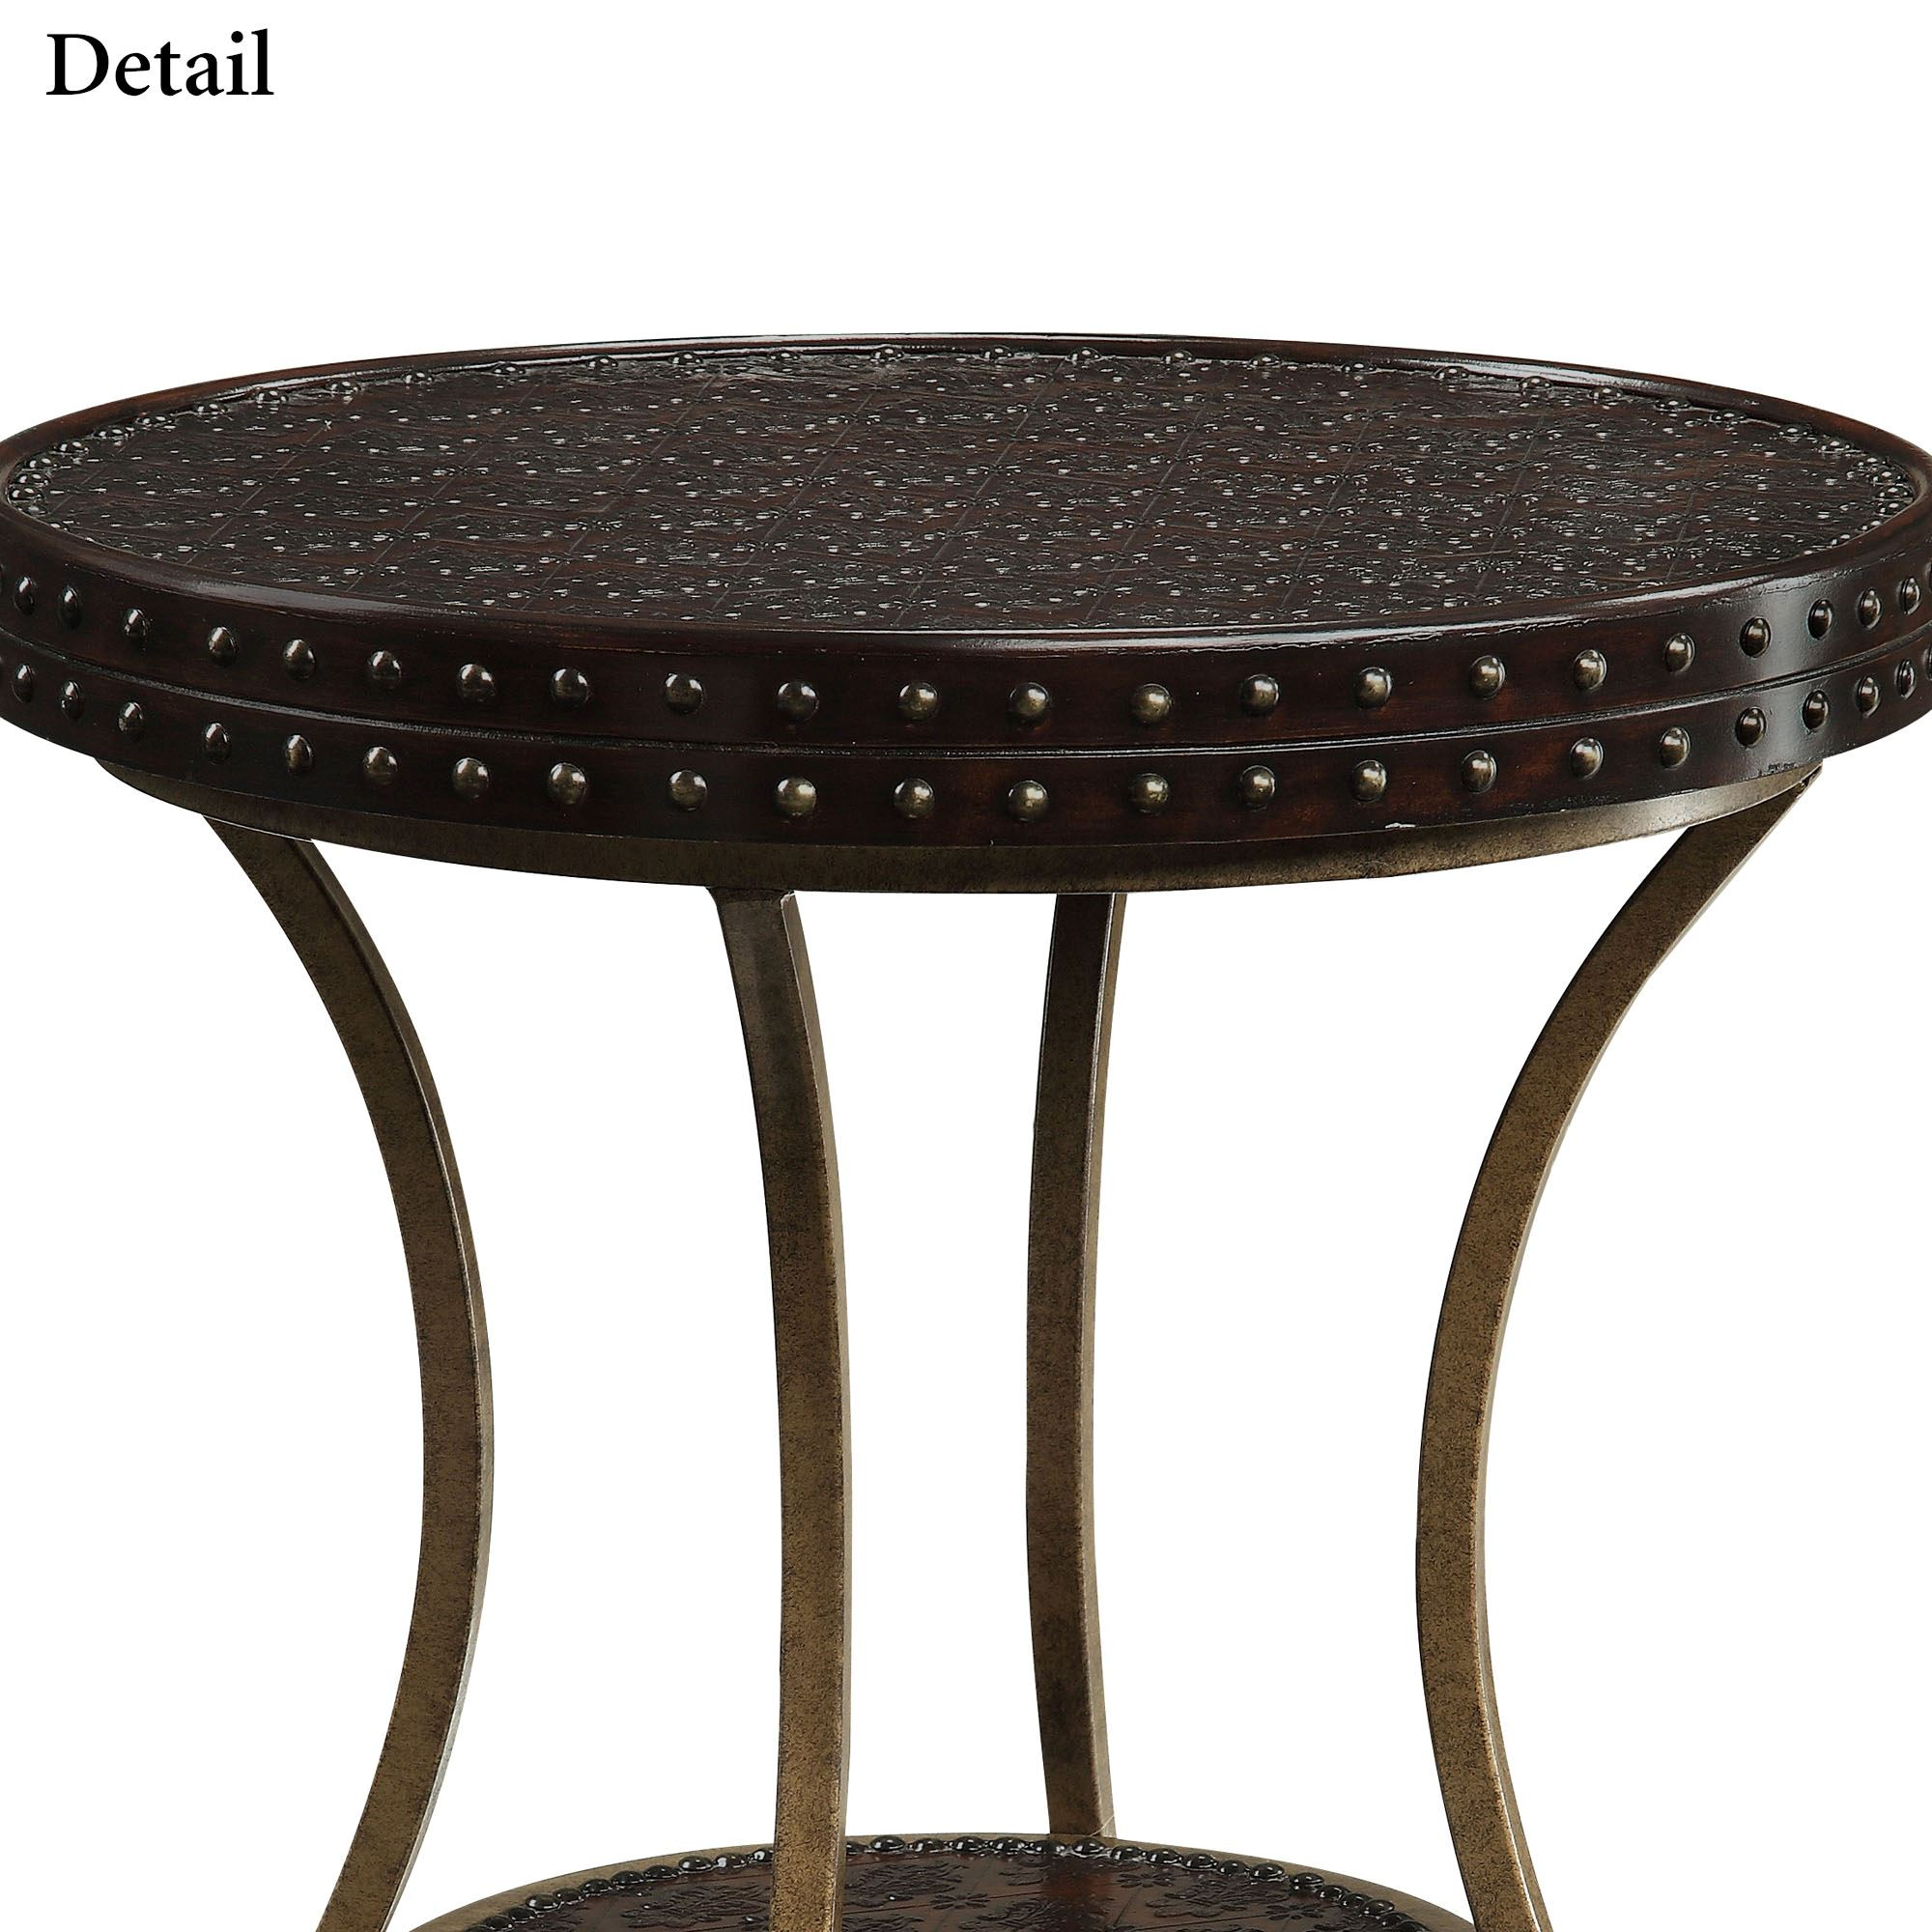 baylor round metal accent table black gold modern coffee tables edmonton furniture bags acrylic snack red asian lamp wall clock design quatrefoil wood rustic contemporary end for